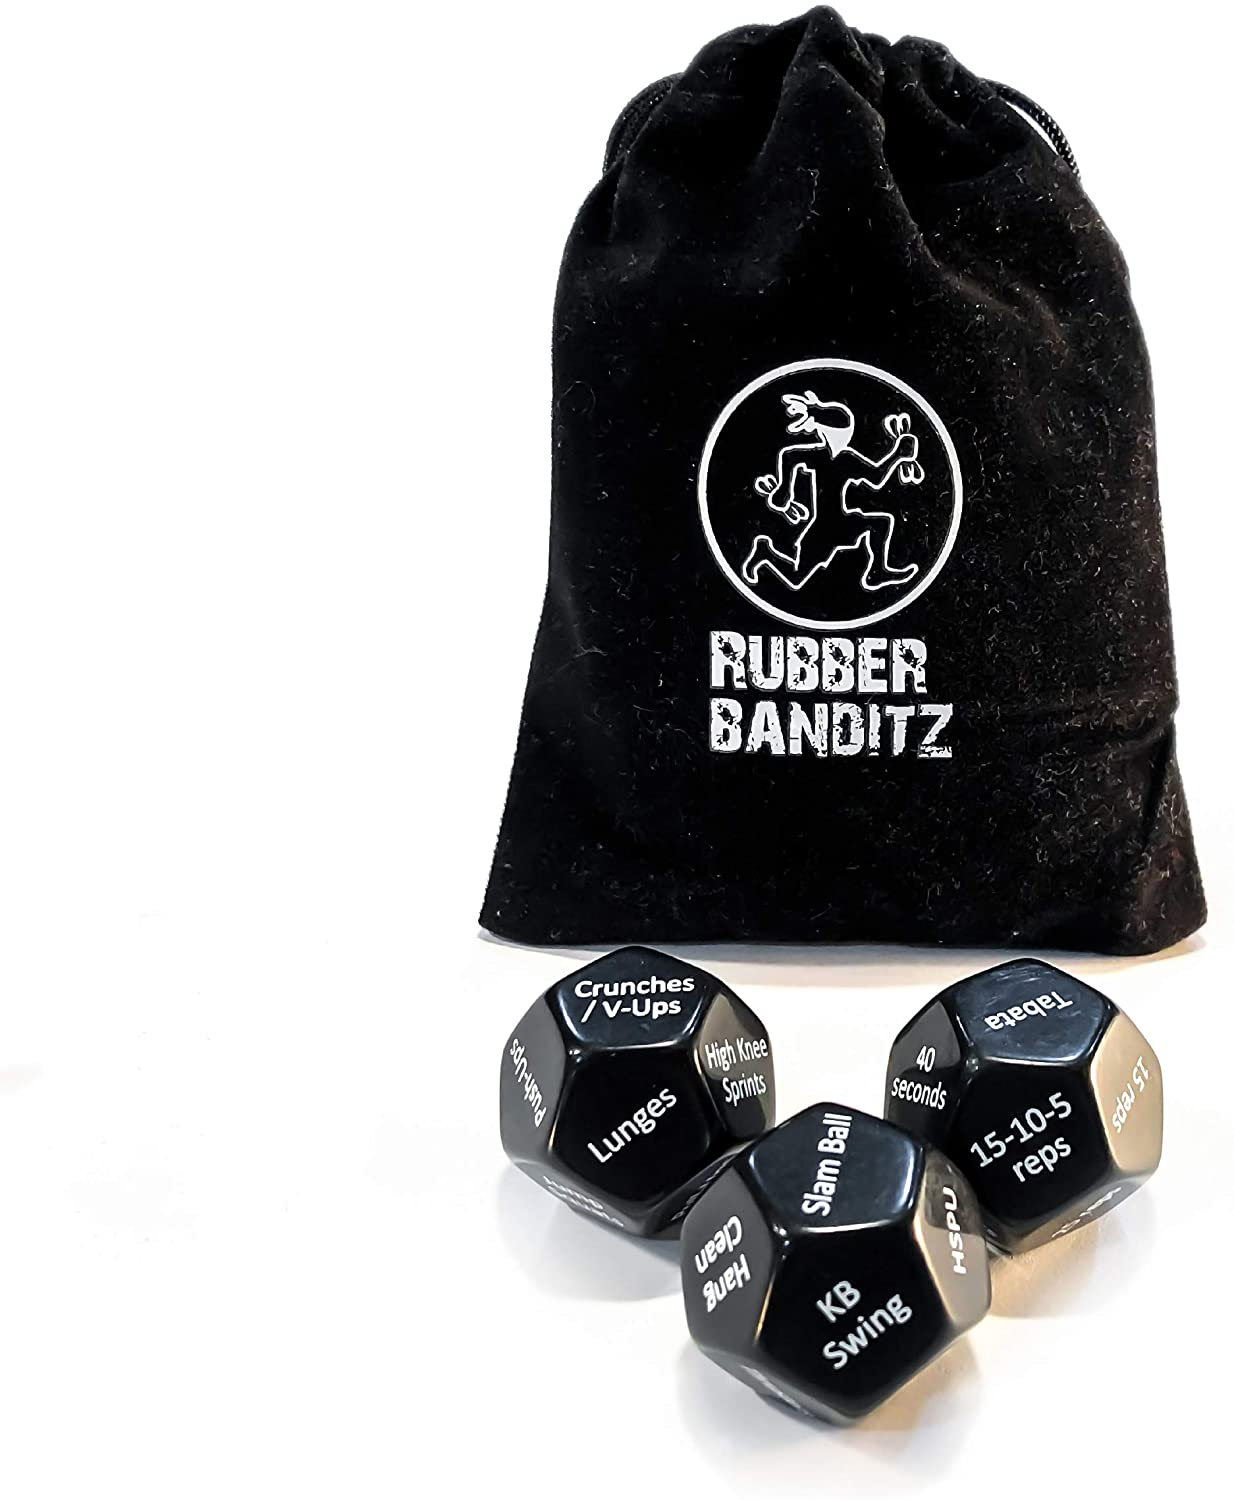 Rubberbanditz Exercise Dice for Workouts - Full Body Fitness & Workout on Demand Game for Adults and Kids (Set of 3 12-Sided dice)